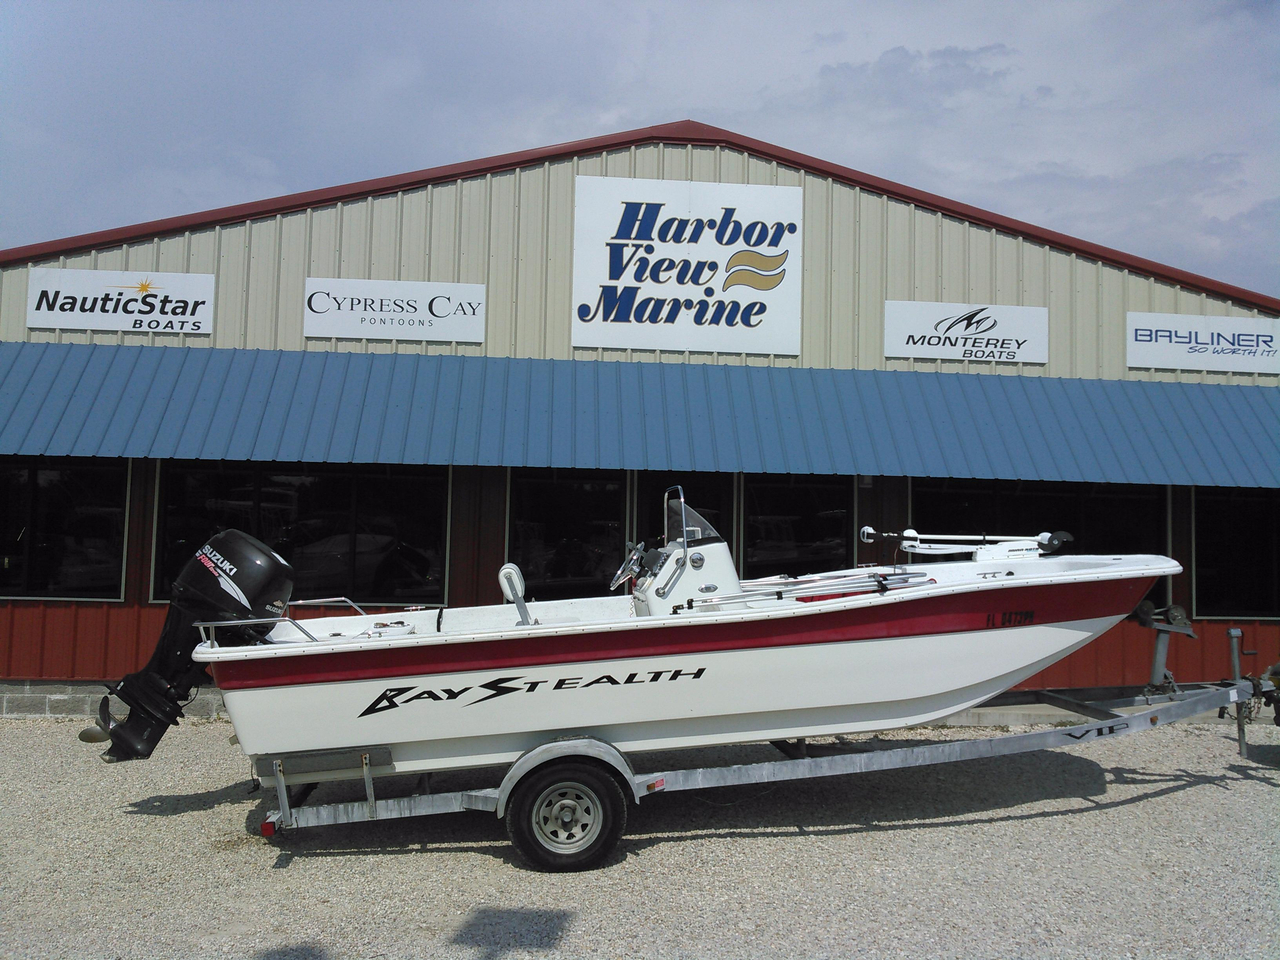 2008 used bay stealth 2194 skiff flats fishing boat for for Used fishing boats for sale in florida